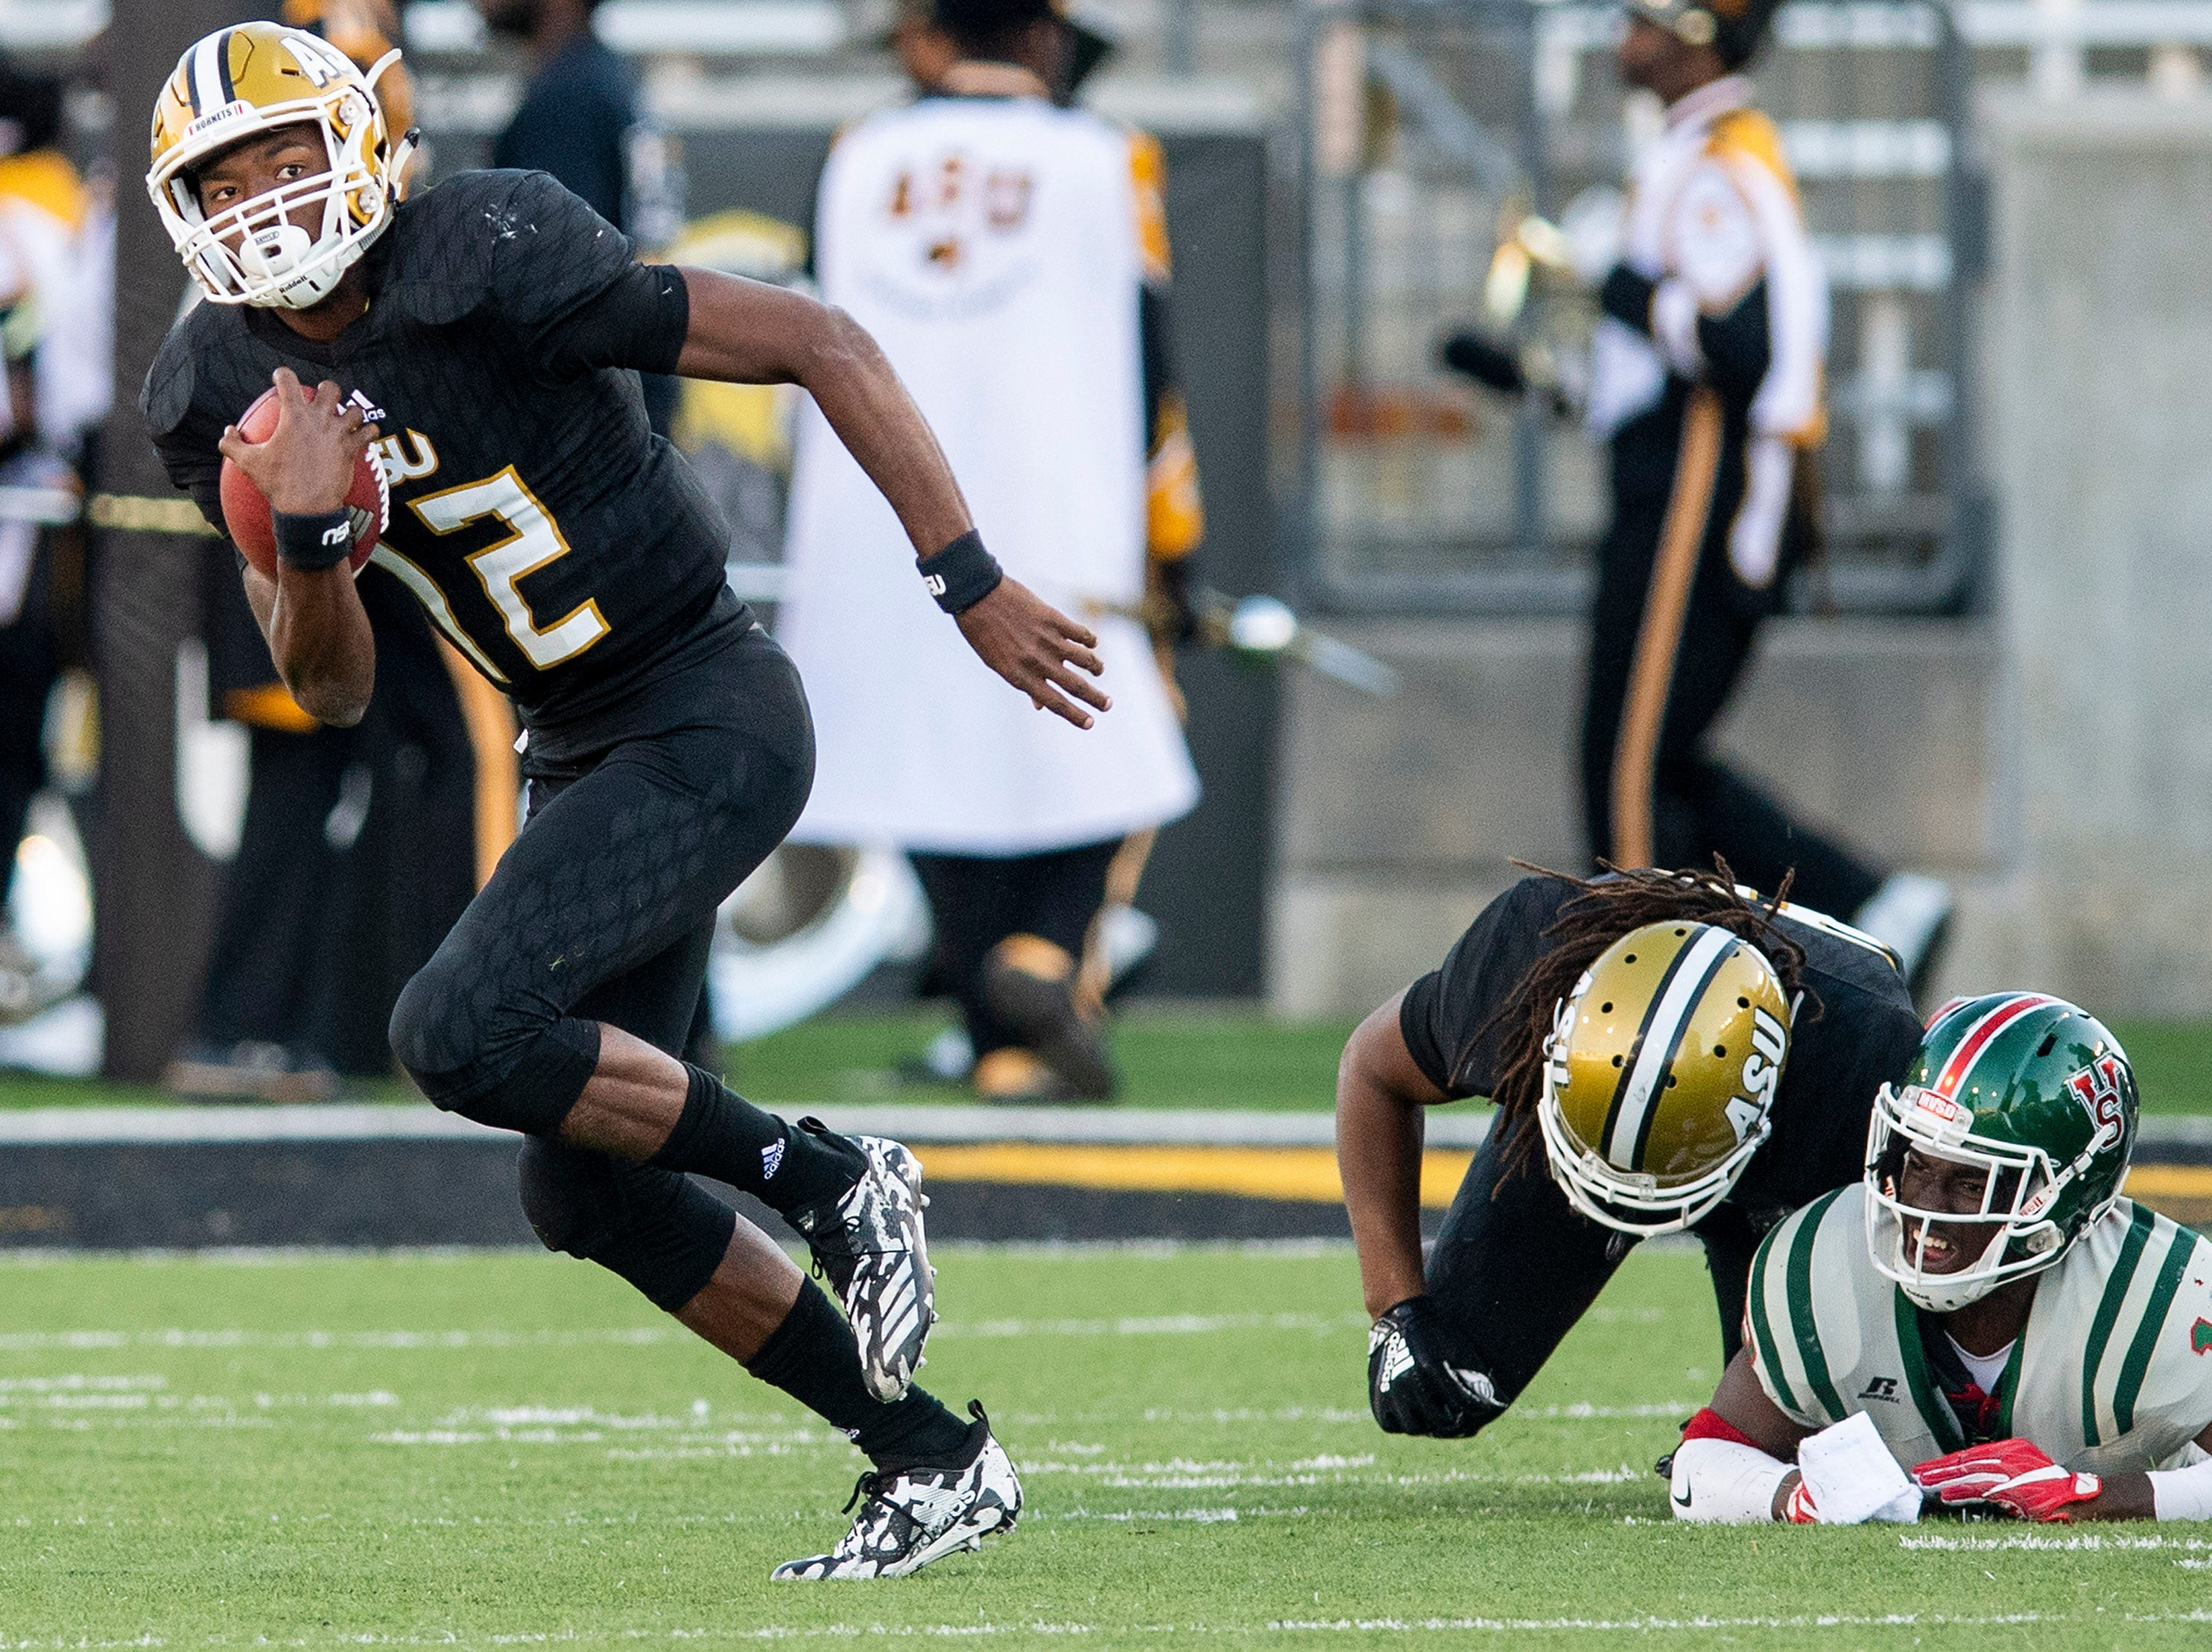 Alabama State University quarterback KHA'Darris Davis (12) carries the ball against Mississippi Valley State in first half action of the Turkey Day Classic at Hornet Stadium on the ASU campus in Montgomery, Ala., on Thanksgiving Day, Thursday November 22, 2018.